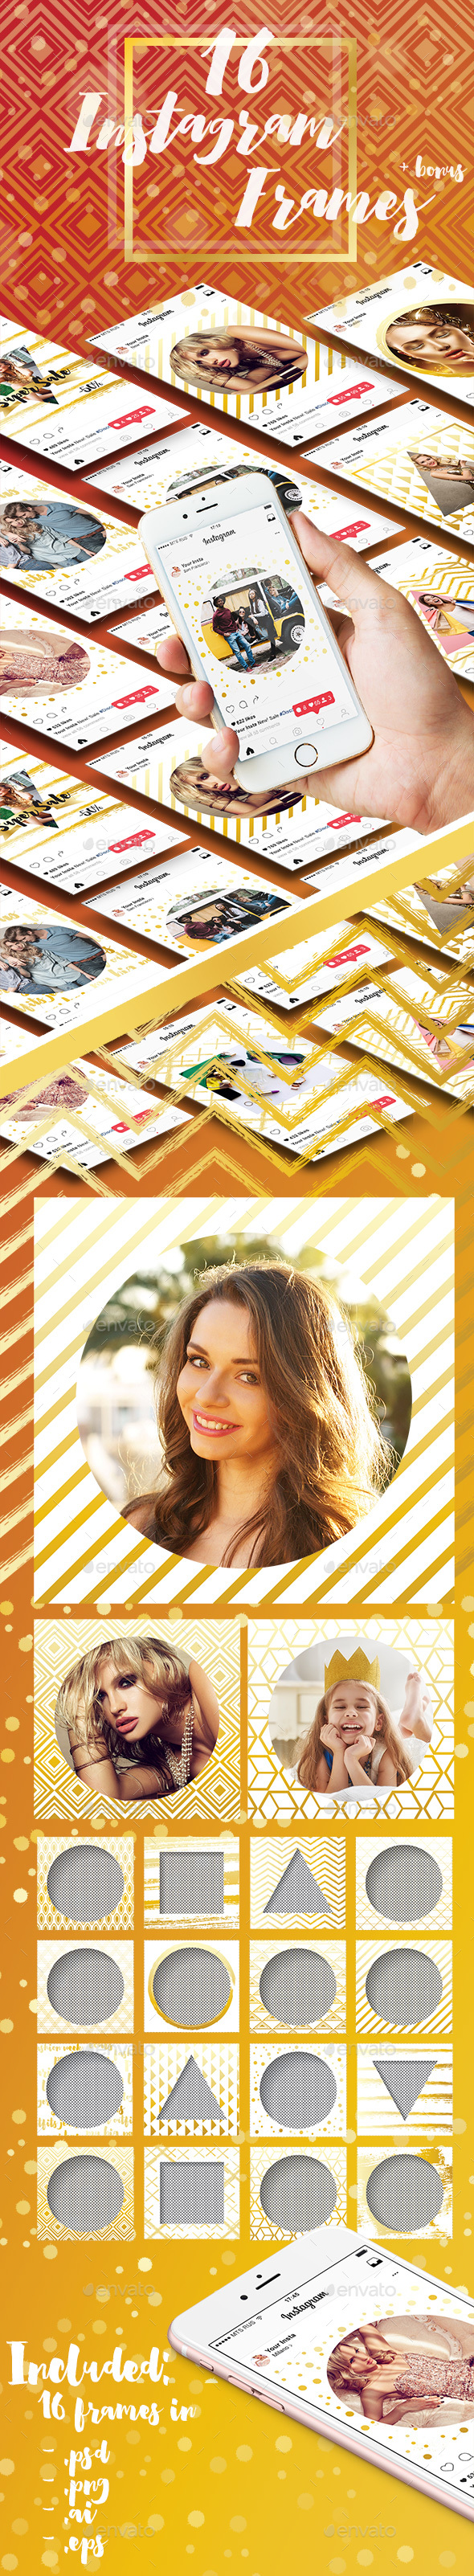 16 Instagram Template in Gold Color - Miscellaneous Social Media